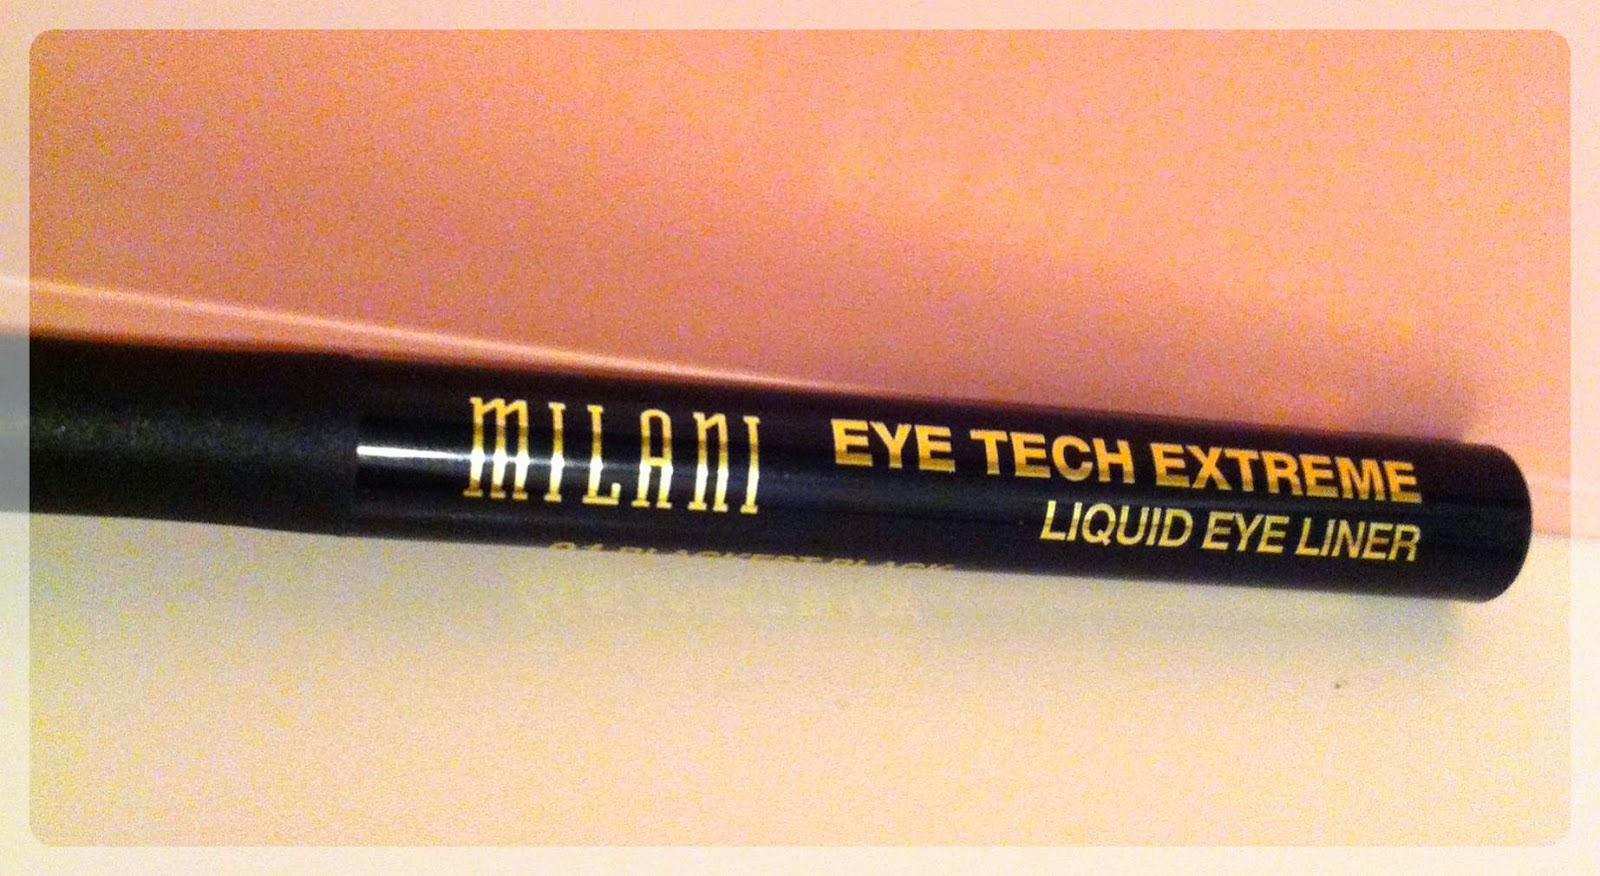 Milani Eye Tech Extreme